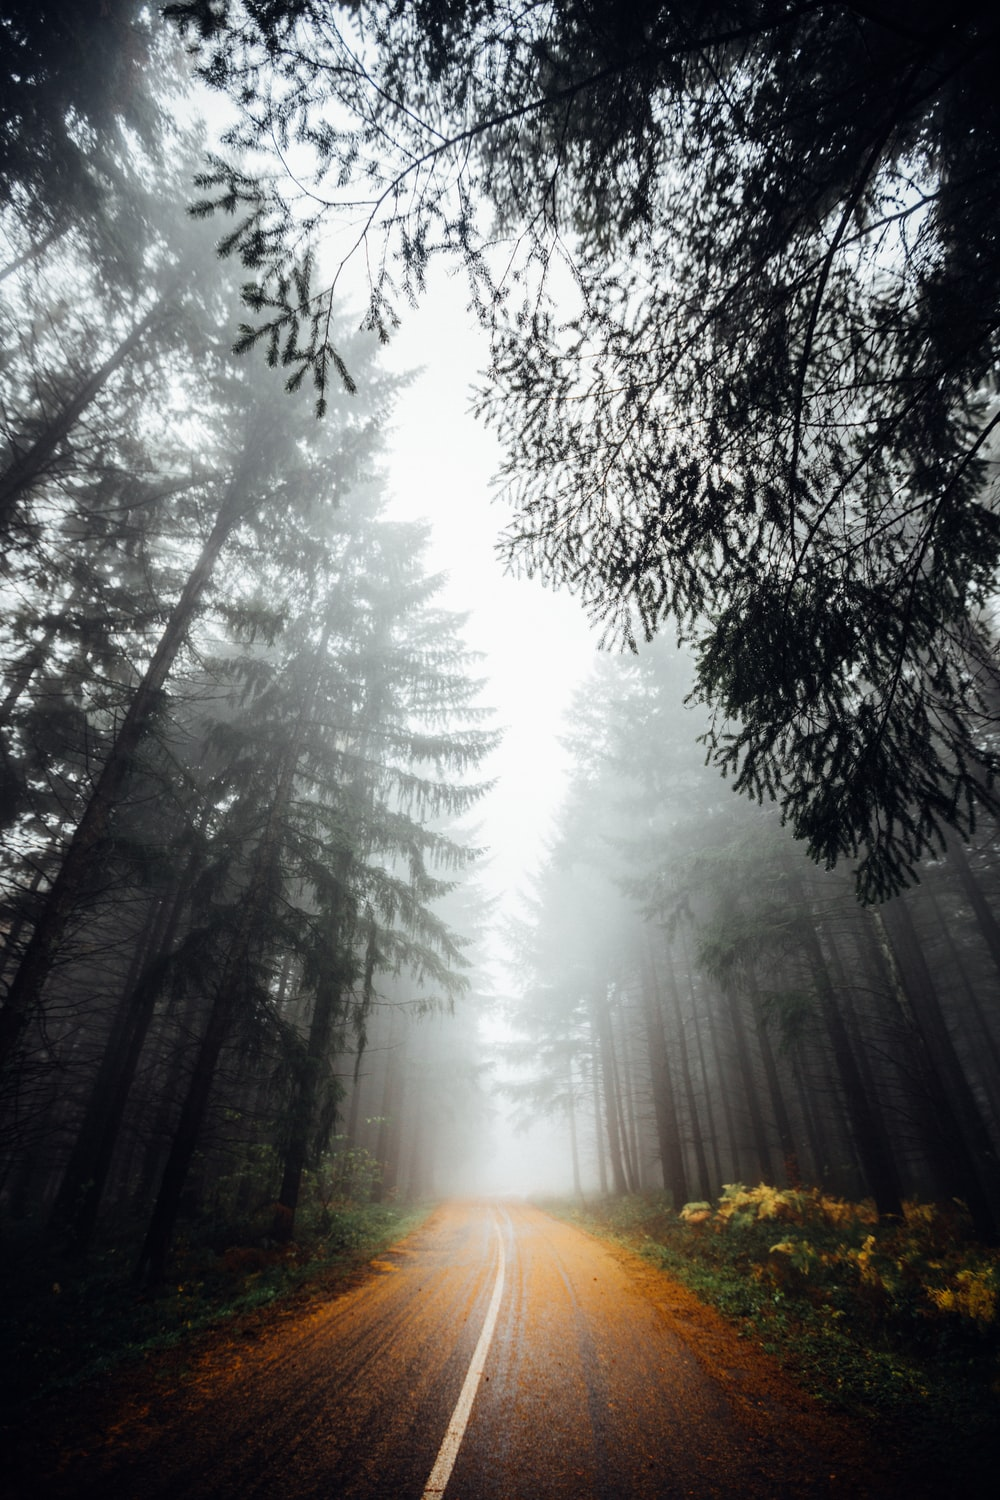 road in woods with fogs overhead at daytime